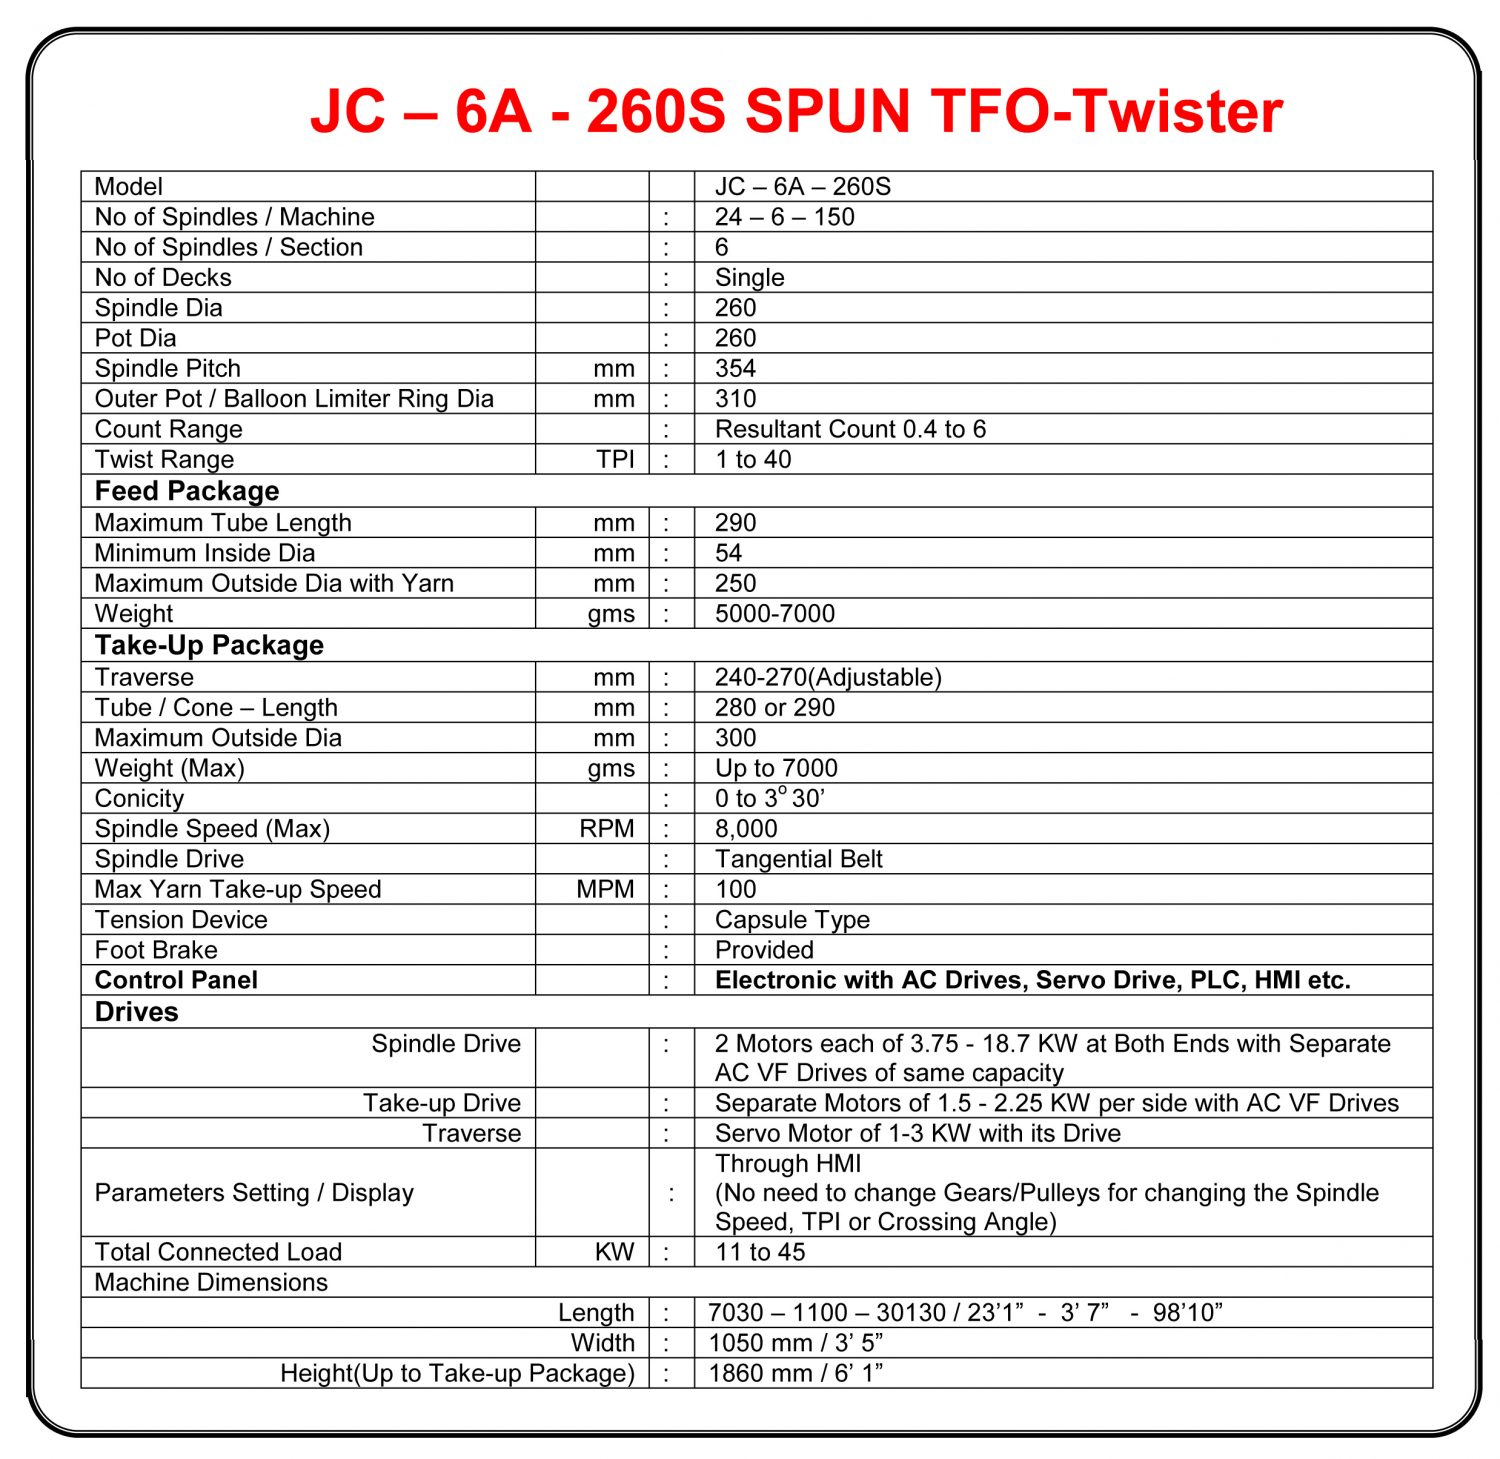 260 mm Pot Industrial Thread Spun TFO Technical Specifications